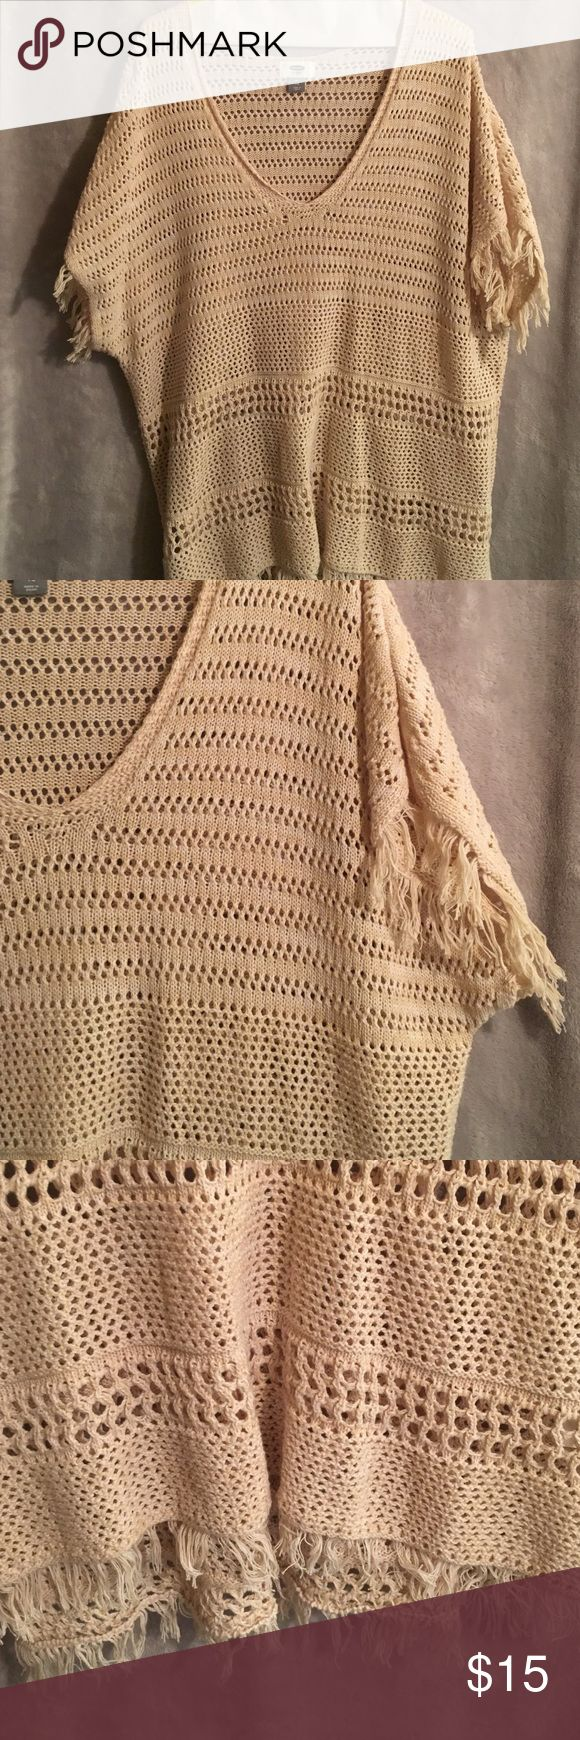 Big Woven Sweater with Fringes! WORN ONCE!😍 Extremely lightweight woven sweater with fringes and sleeves. Cream/beige color. Very summery design, cute when paired with jeans and flip flops! Worn once! 🤗 Old Navy Sweaters Crew & Scoop Necks